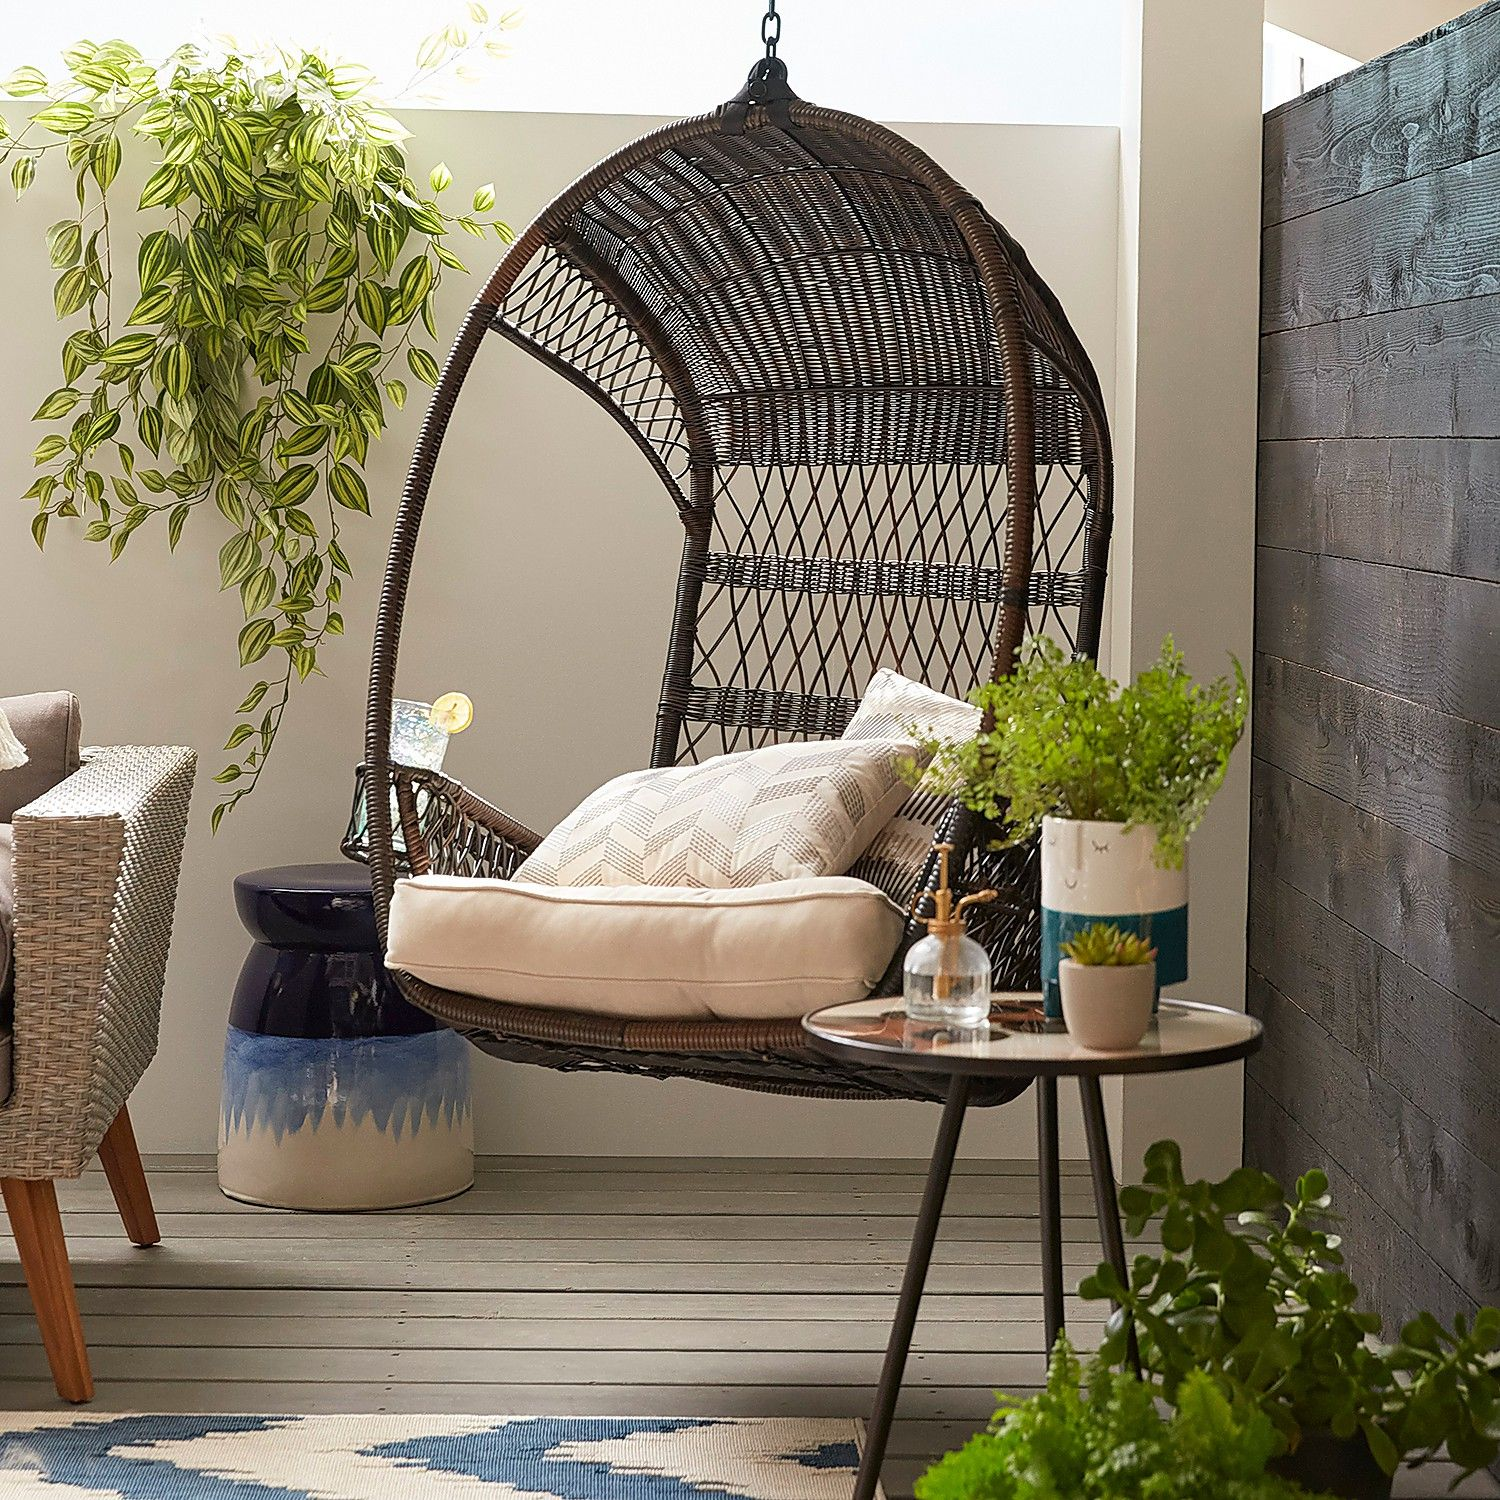 Patio Furniture | Free Shipping Over $49 | Pier1.com | Pier 1